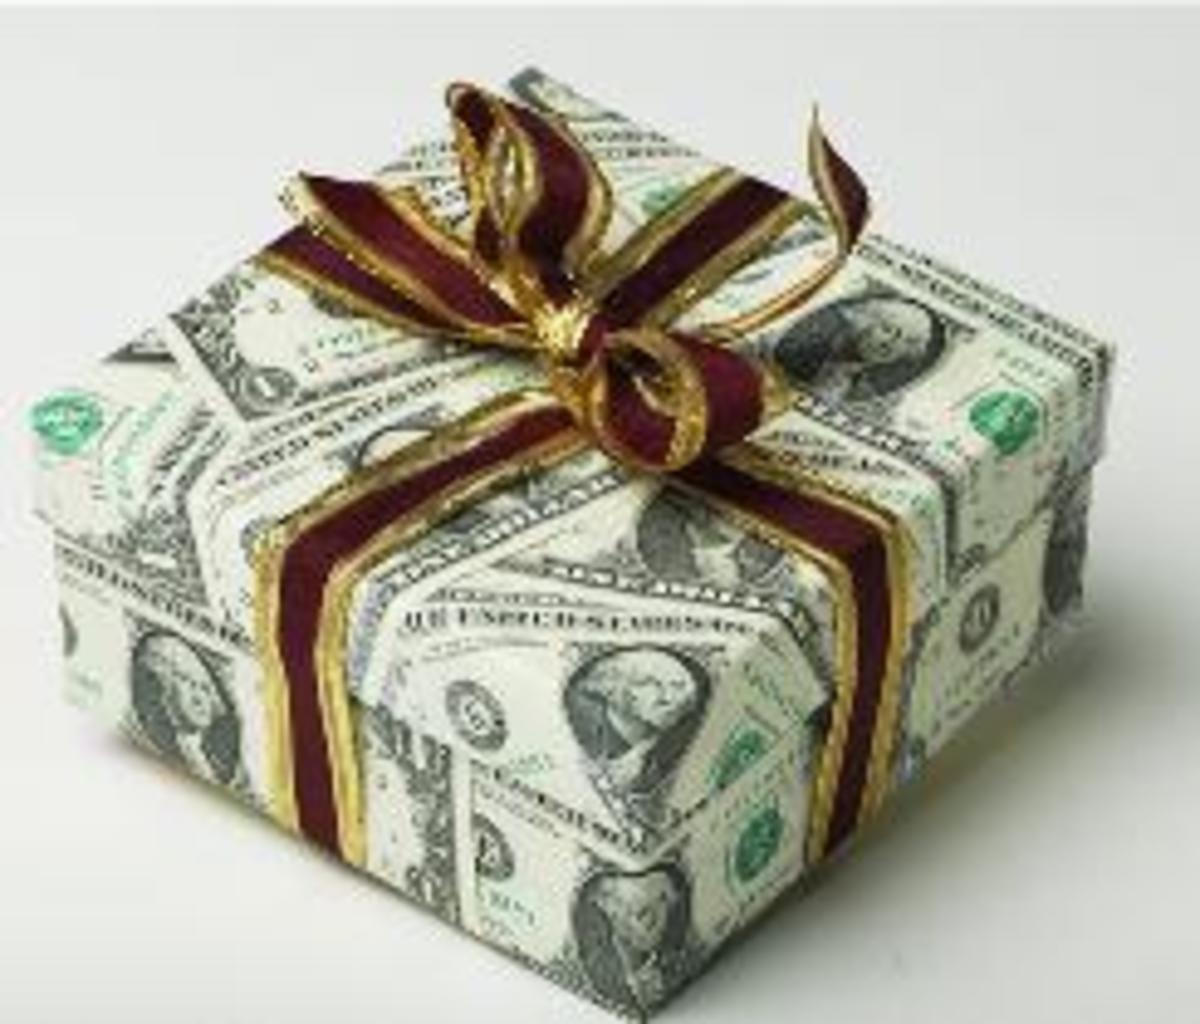 Money as a Gift: Appropriate Amounts for Birthdays